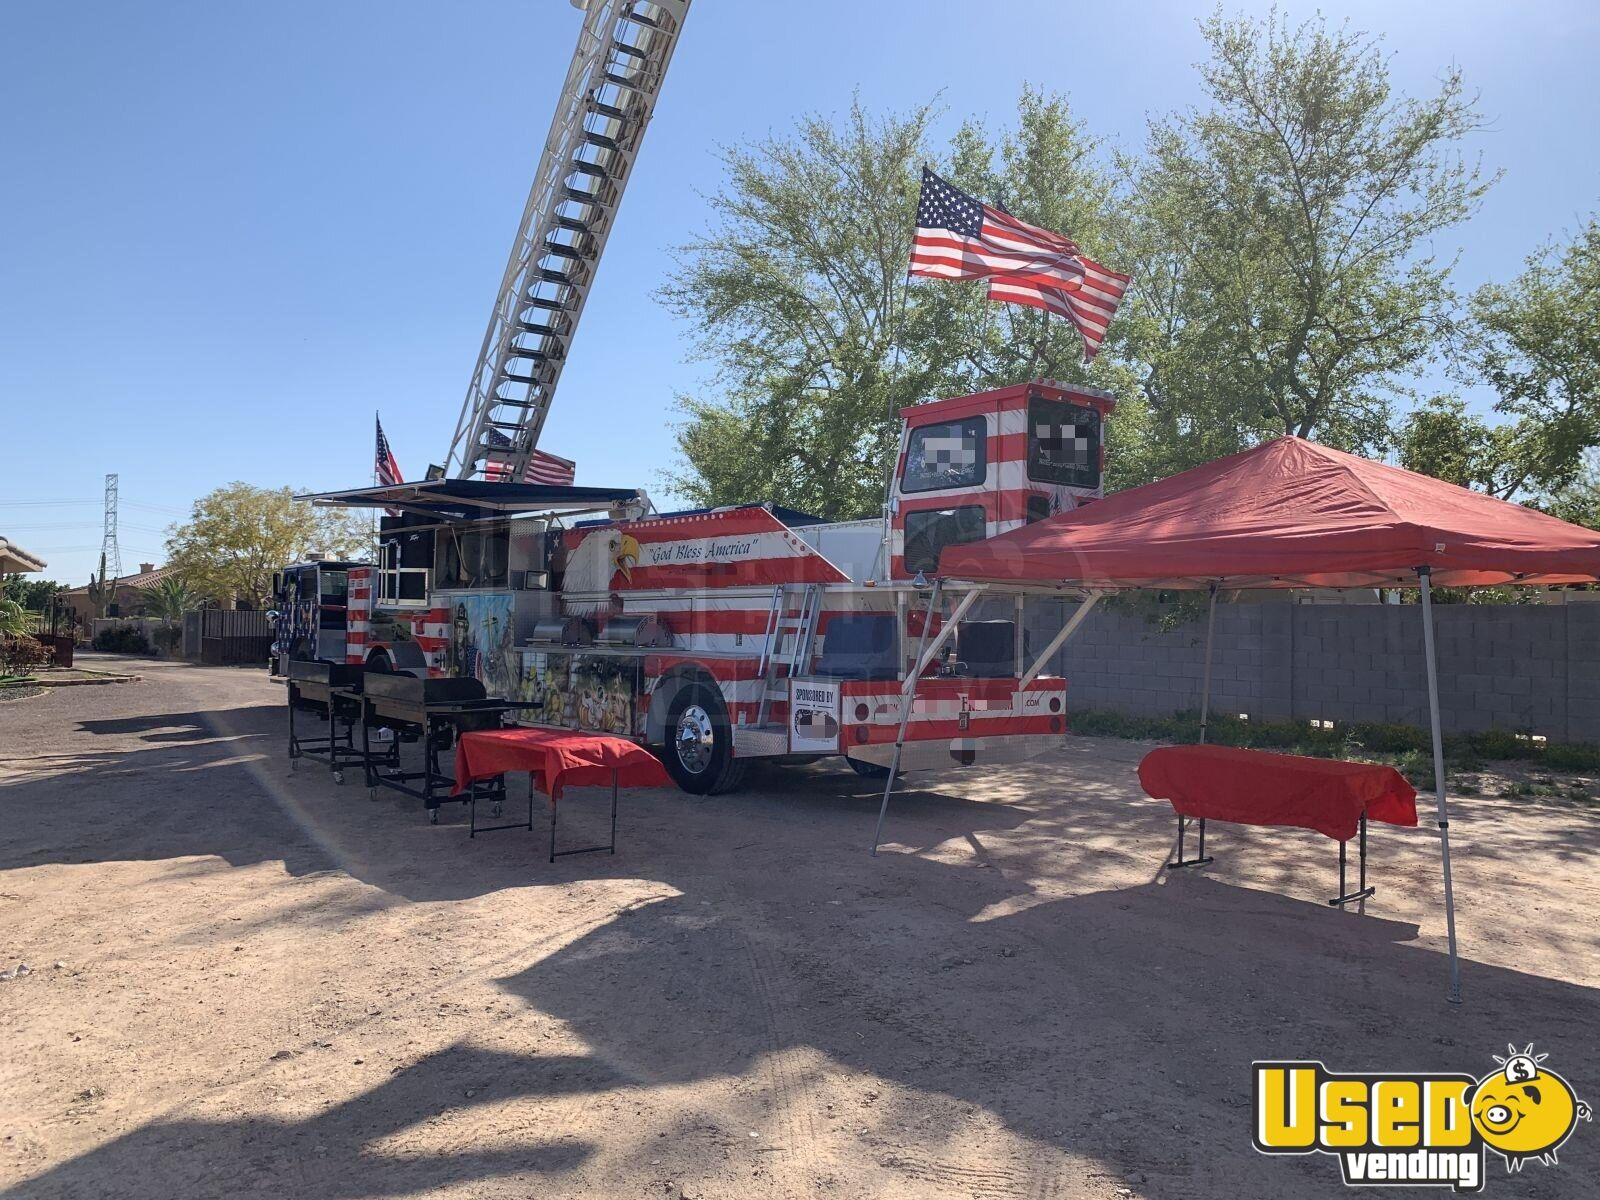 1986 Hahn Ladder Tiller Barbecue Food Truck Stainless Steel Wall Covers Arizona Diesel Engine for Sale - 2